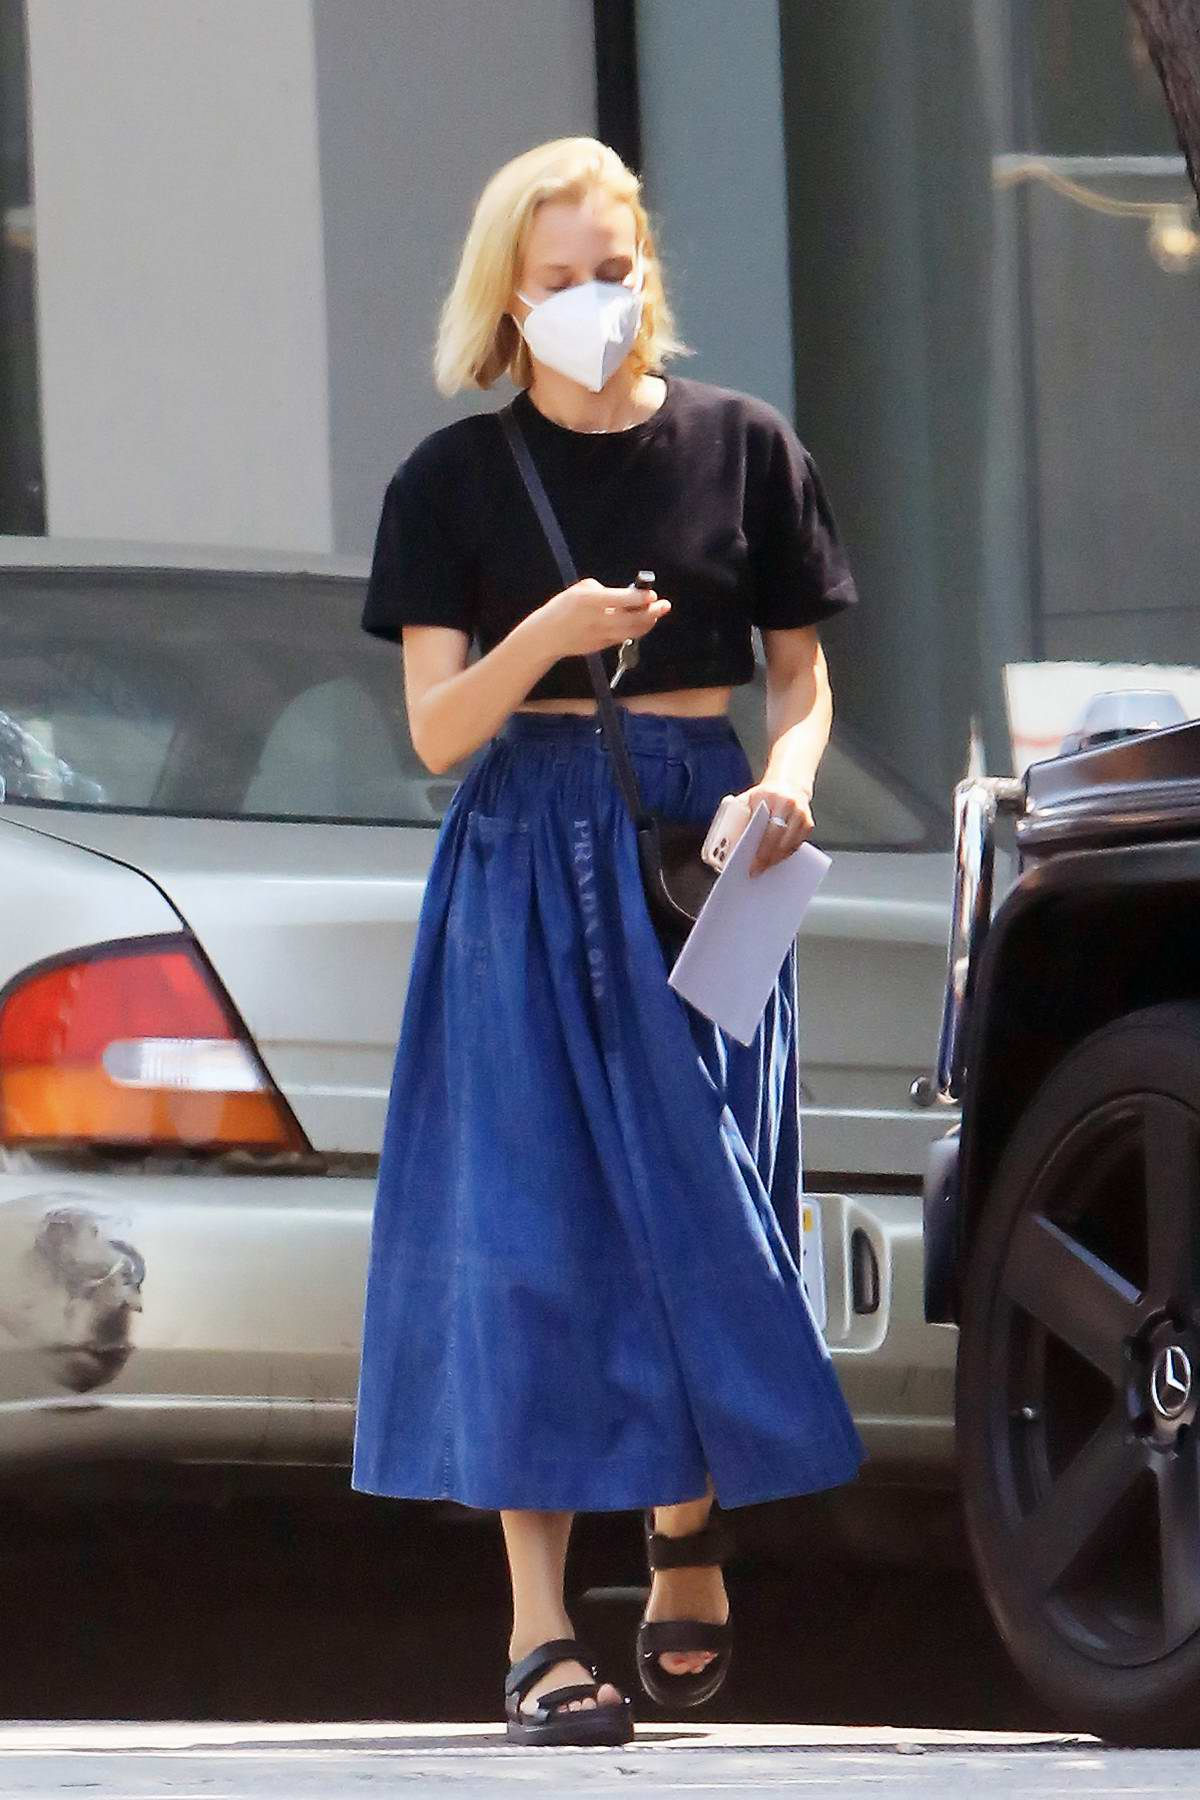 Diane Kruger wears a black crop top and denim skirt while shopping groceries at Bristol Farms in Los Angeles